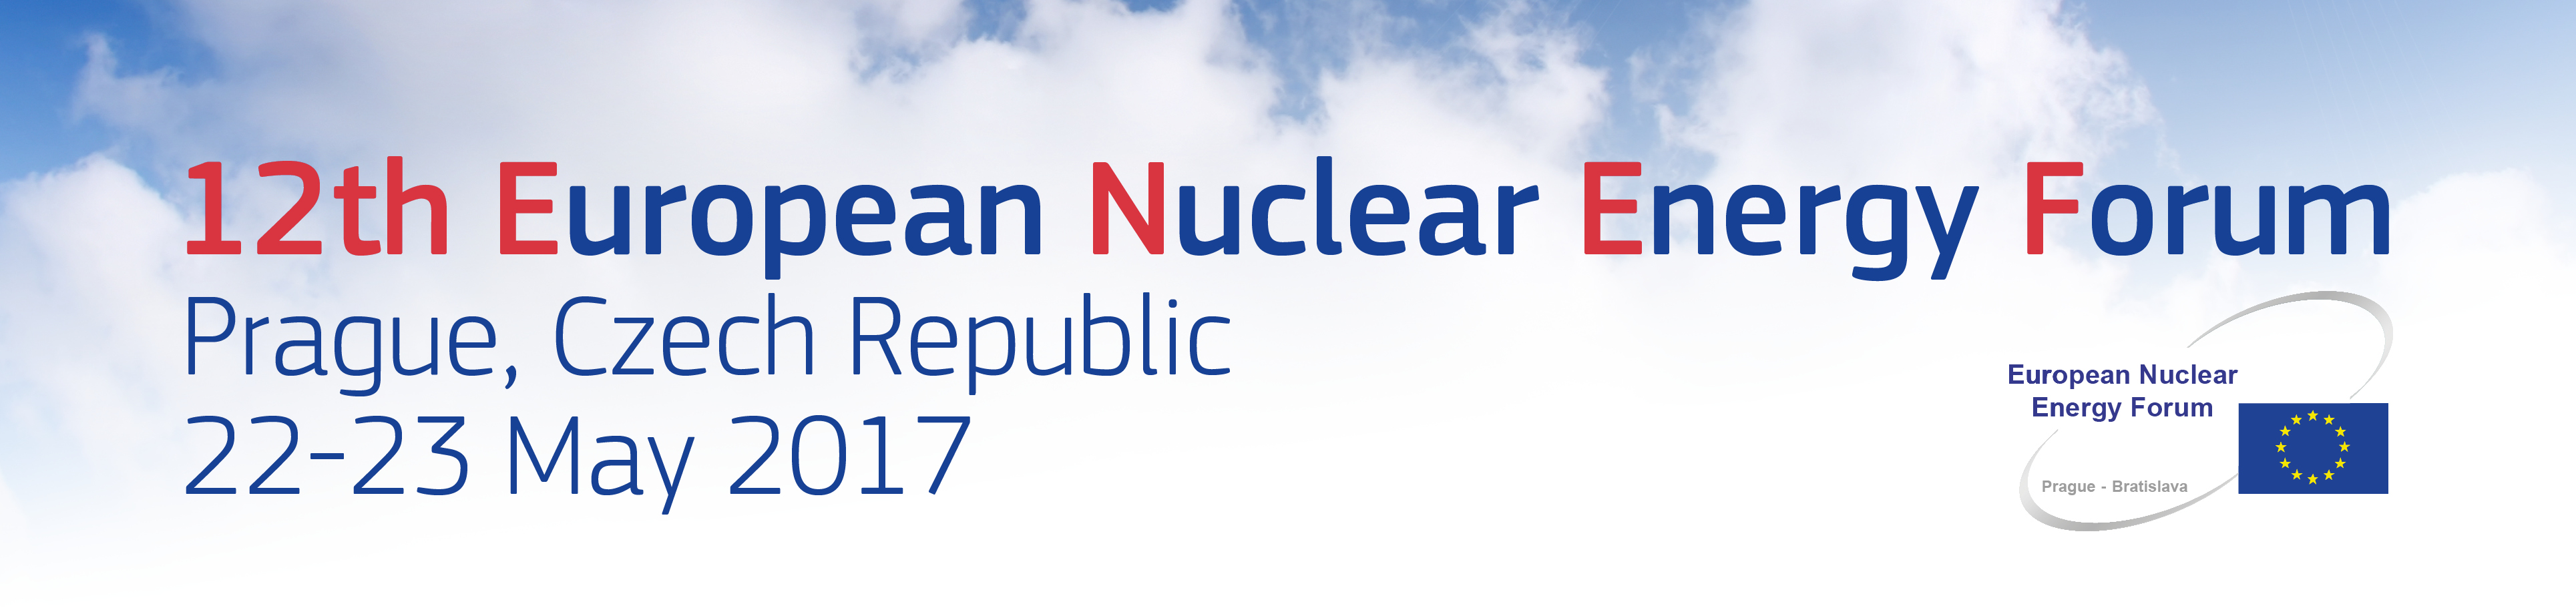 12th European Nuclear Energy Forum